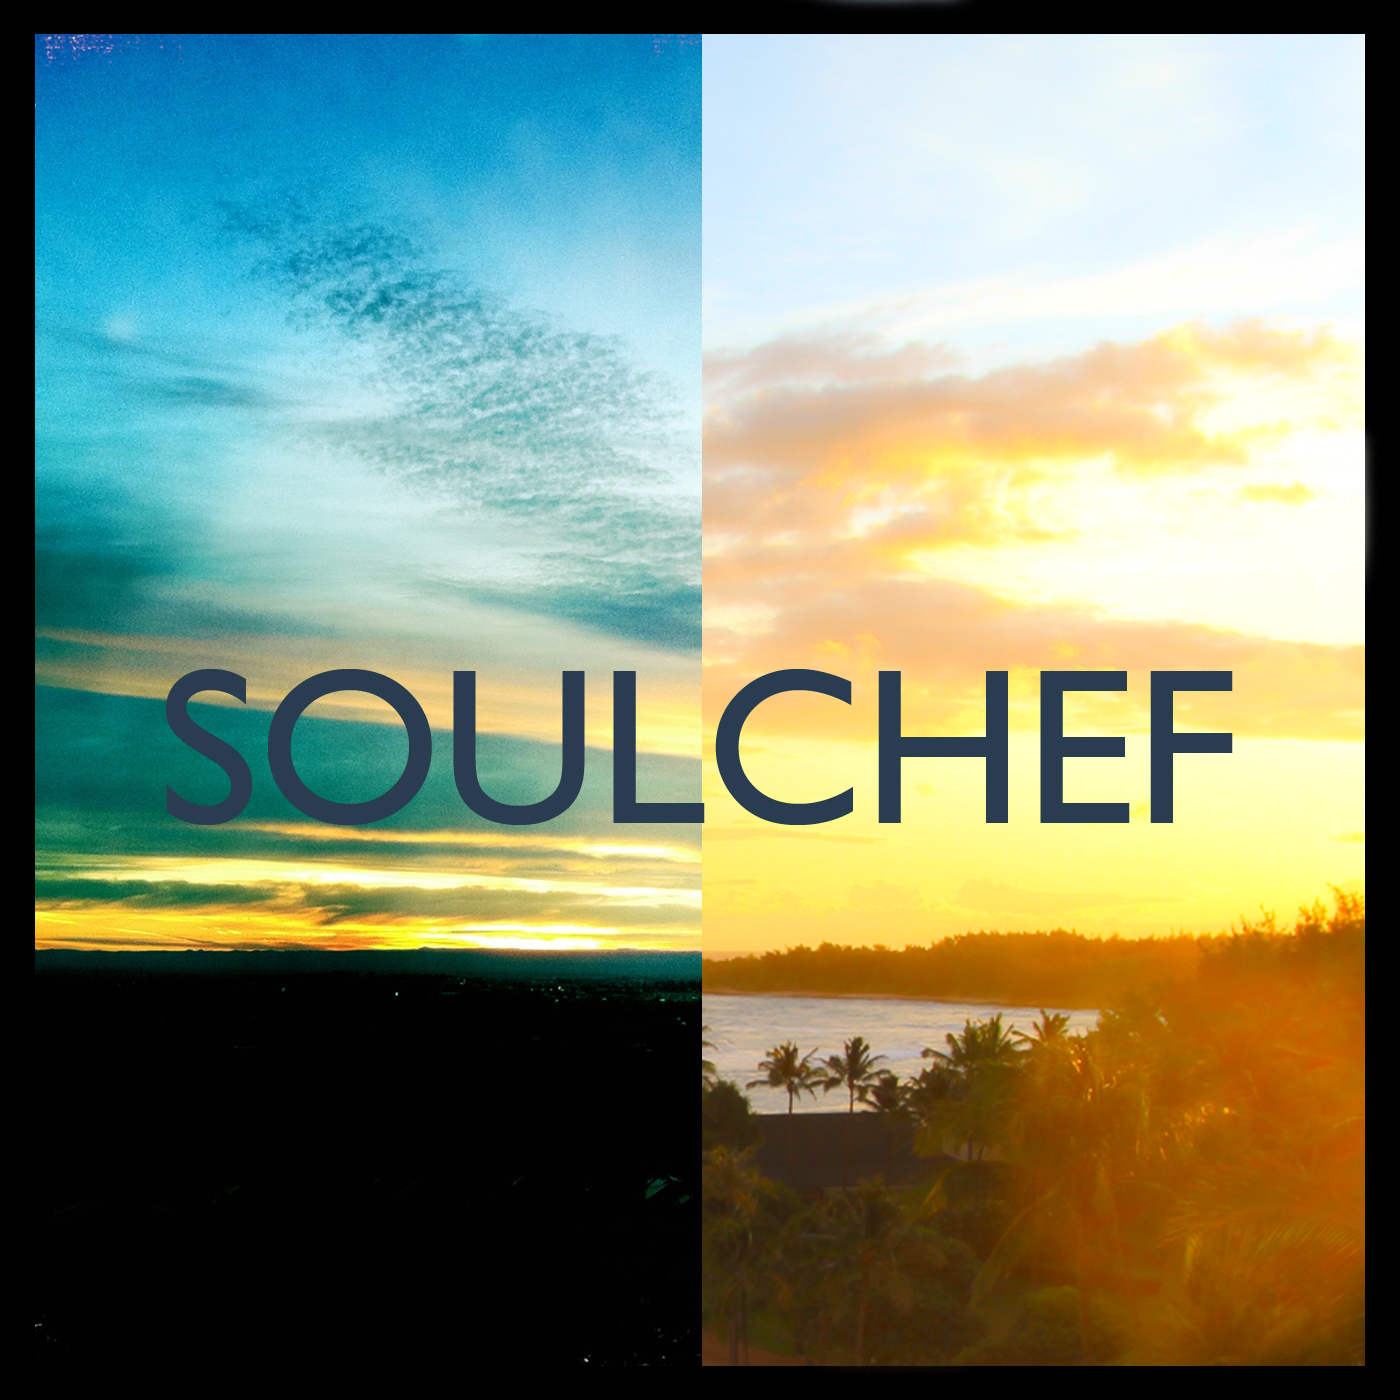 Contest: Win digital copies of SoulChef's upcoming album 'Here & Now'